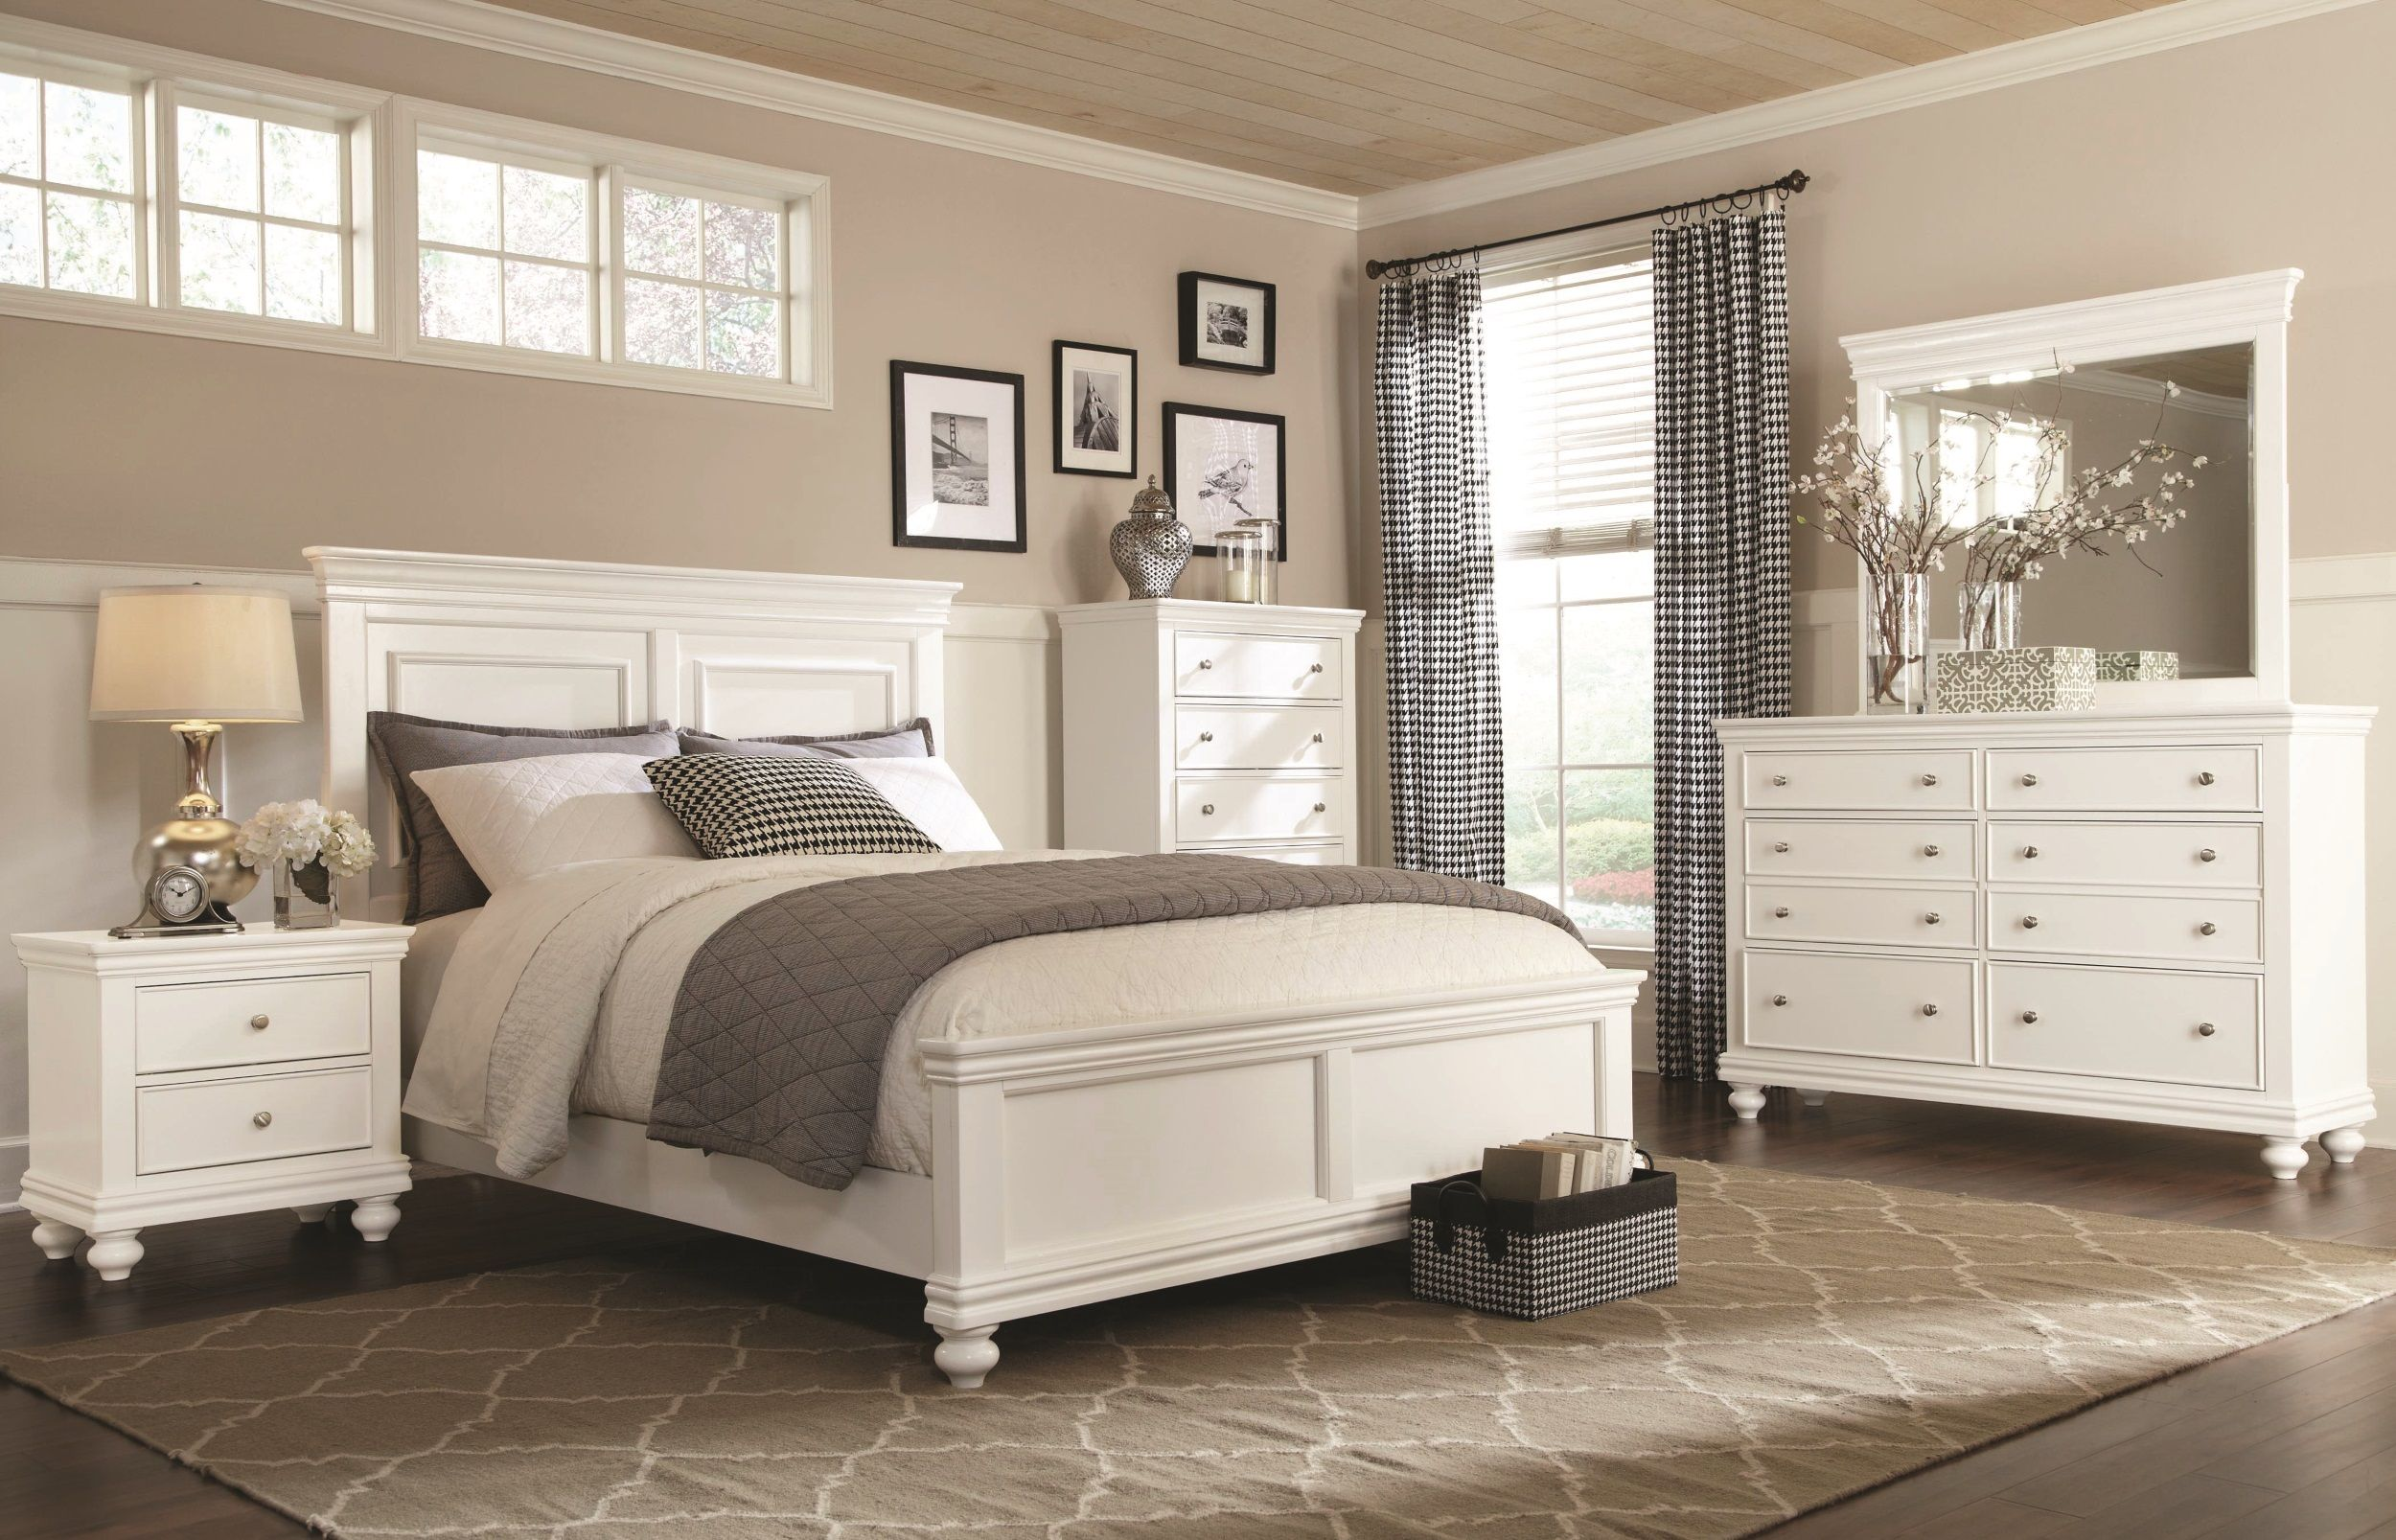 Exceptional What Do You Think Of White Bedroom Sets? Love U0027em Or Hate U0027em? #Bedroom # Furniture #HomeDecor